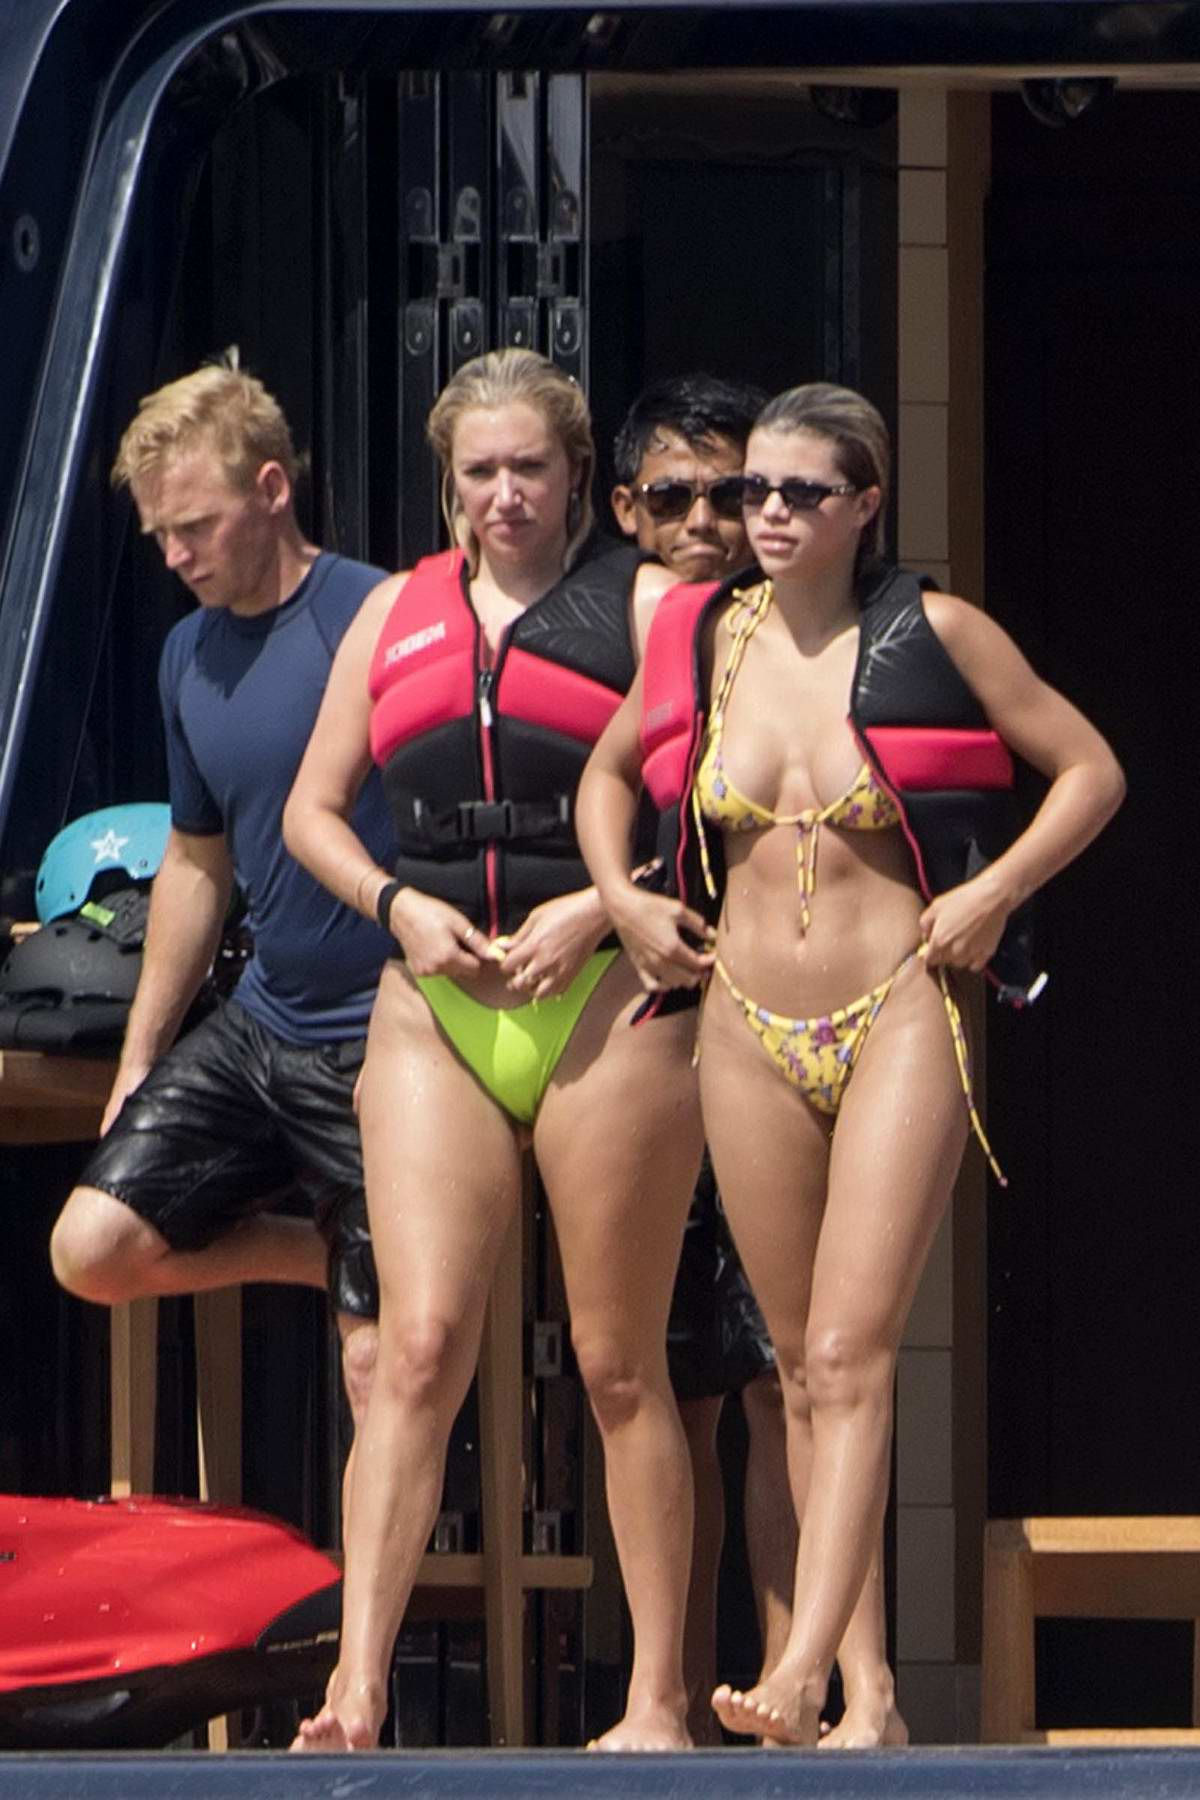 Sofia Richie shows off her bikini body on a yacht while on holiday with friends in Positano, Italy